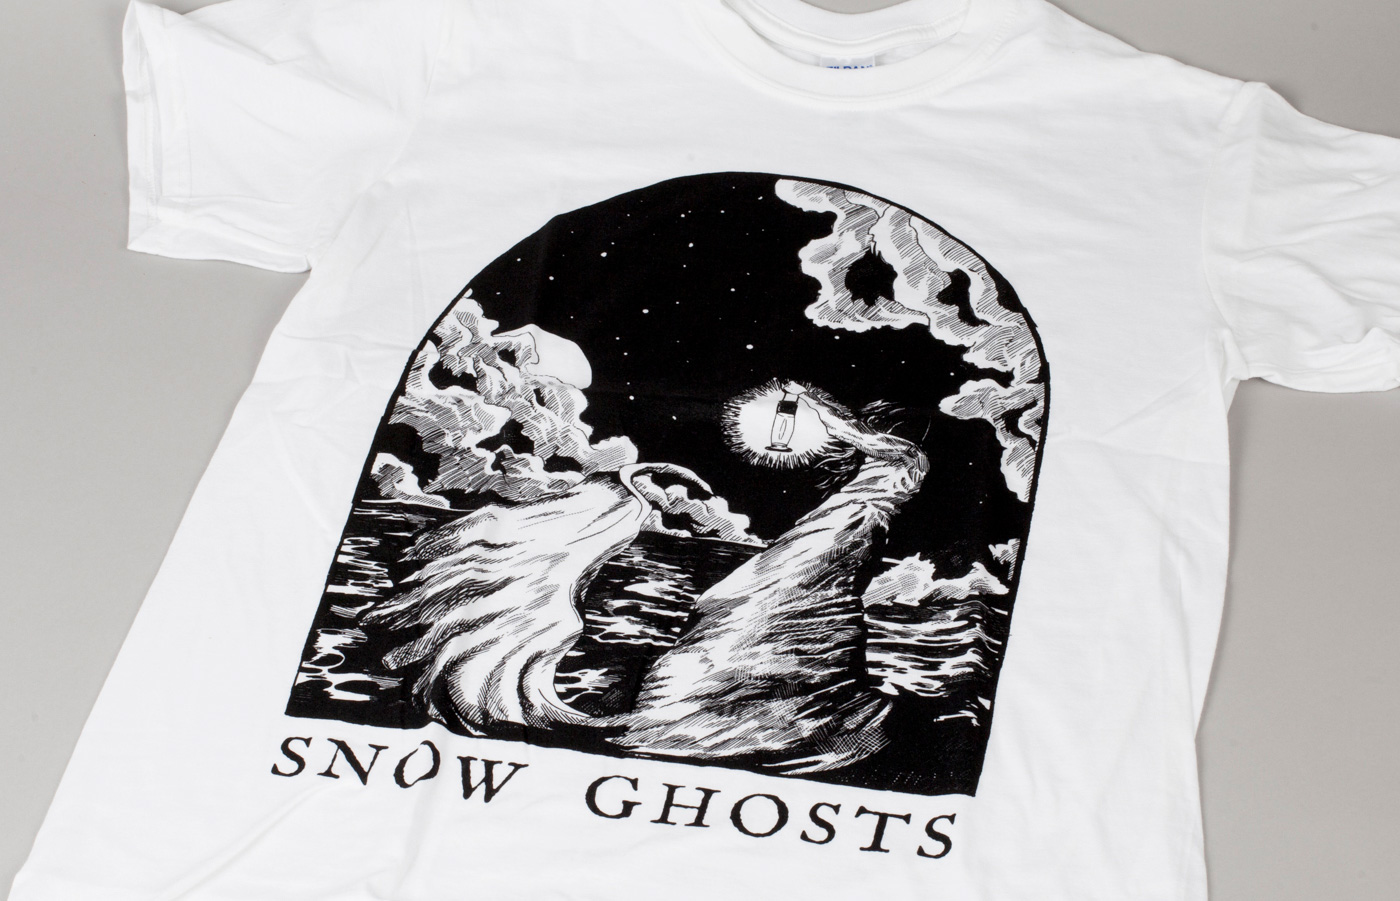 snow ghosts t-shirt